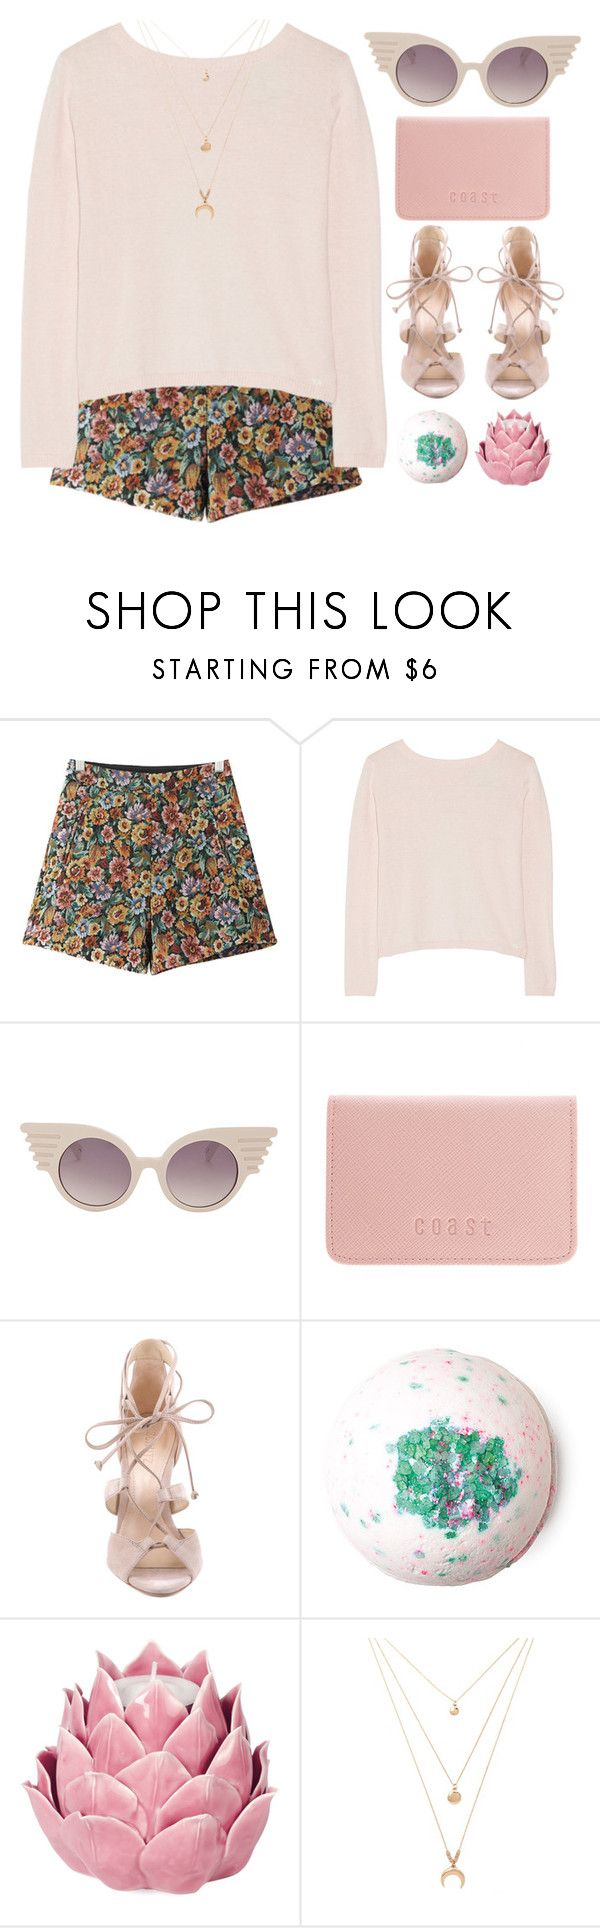 """""""Adored by him// Dodie Clark"""" by blood-under-the-skin ❤ liked on Polyvore featuring Chicnova Fashion, Banjo & Matilda, Jeremy Scott, Coast, Schutz, Zara Home and Forever 21"""